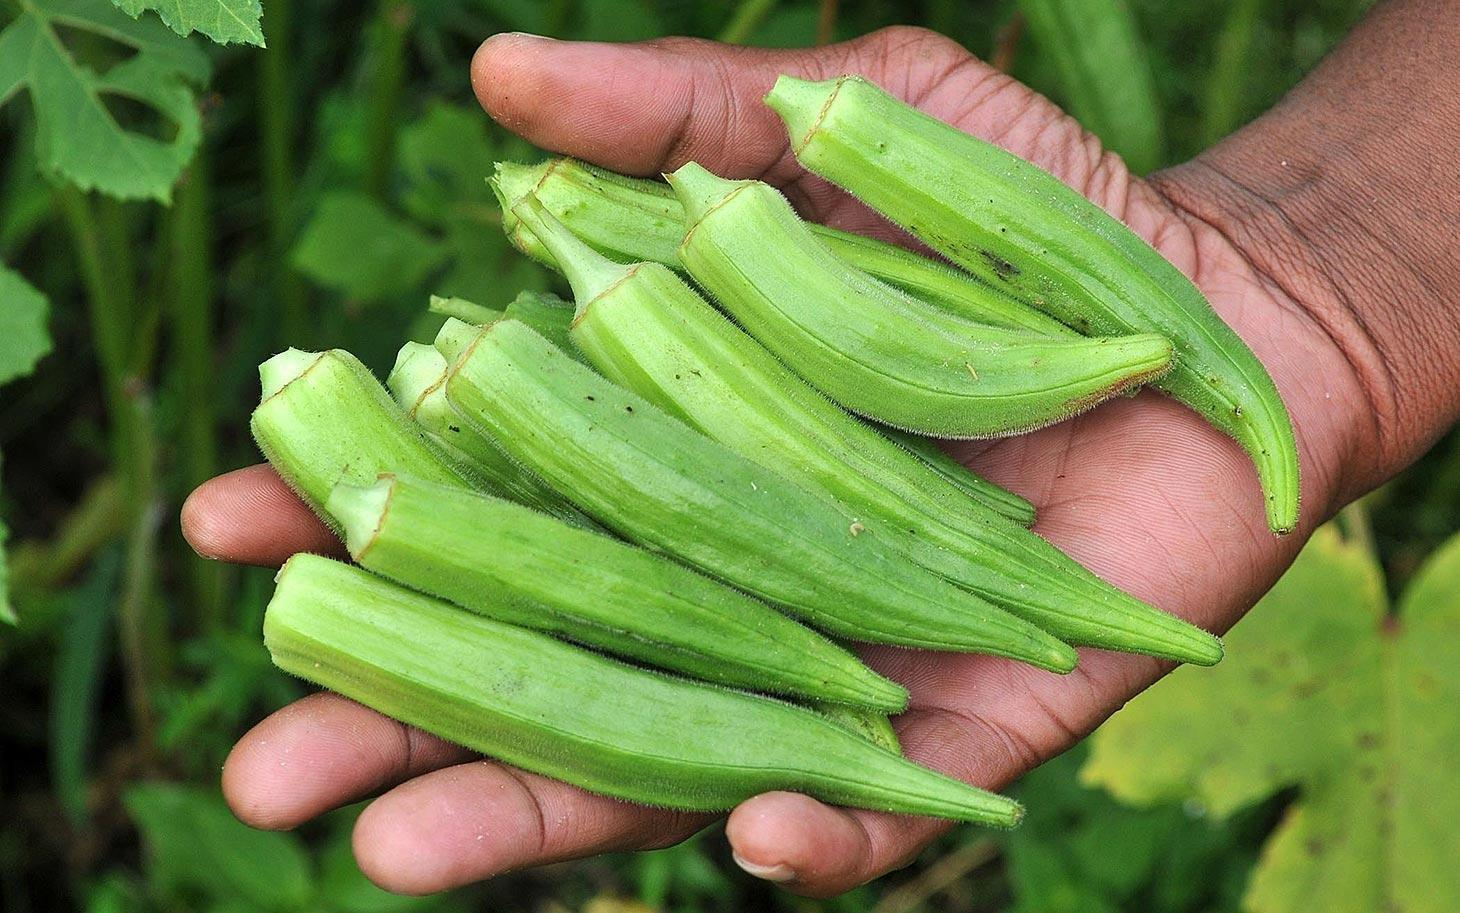 Unbelievable: Treat Diabetes, Asthma, Cholesterol And Kidney Diseases With Okra Water- Now You Can Make It Yourself